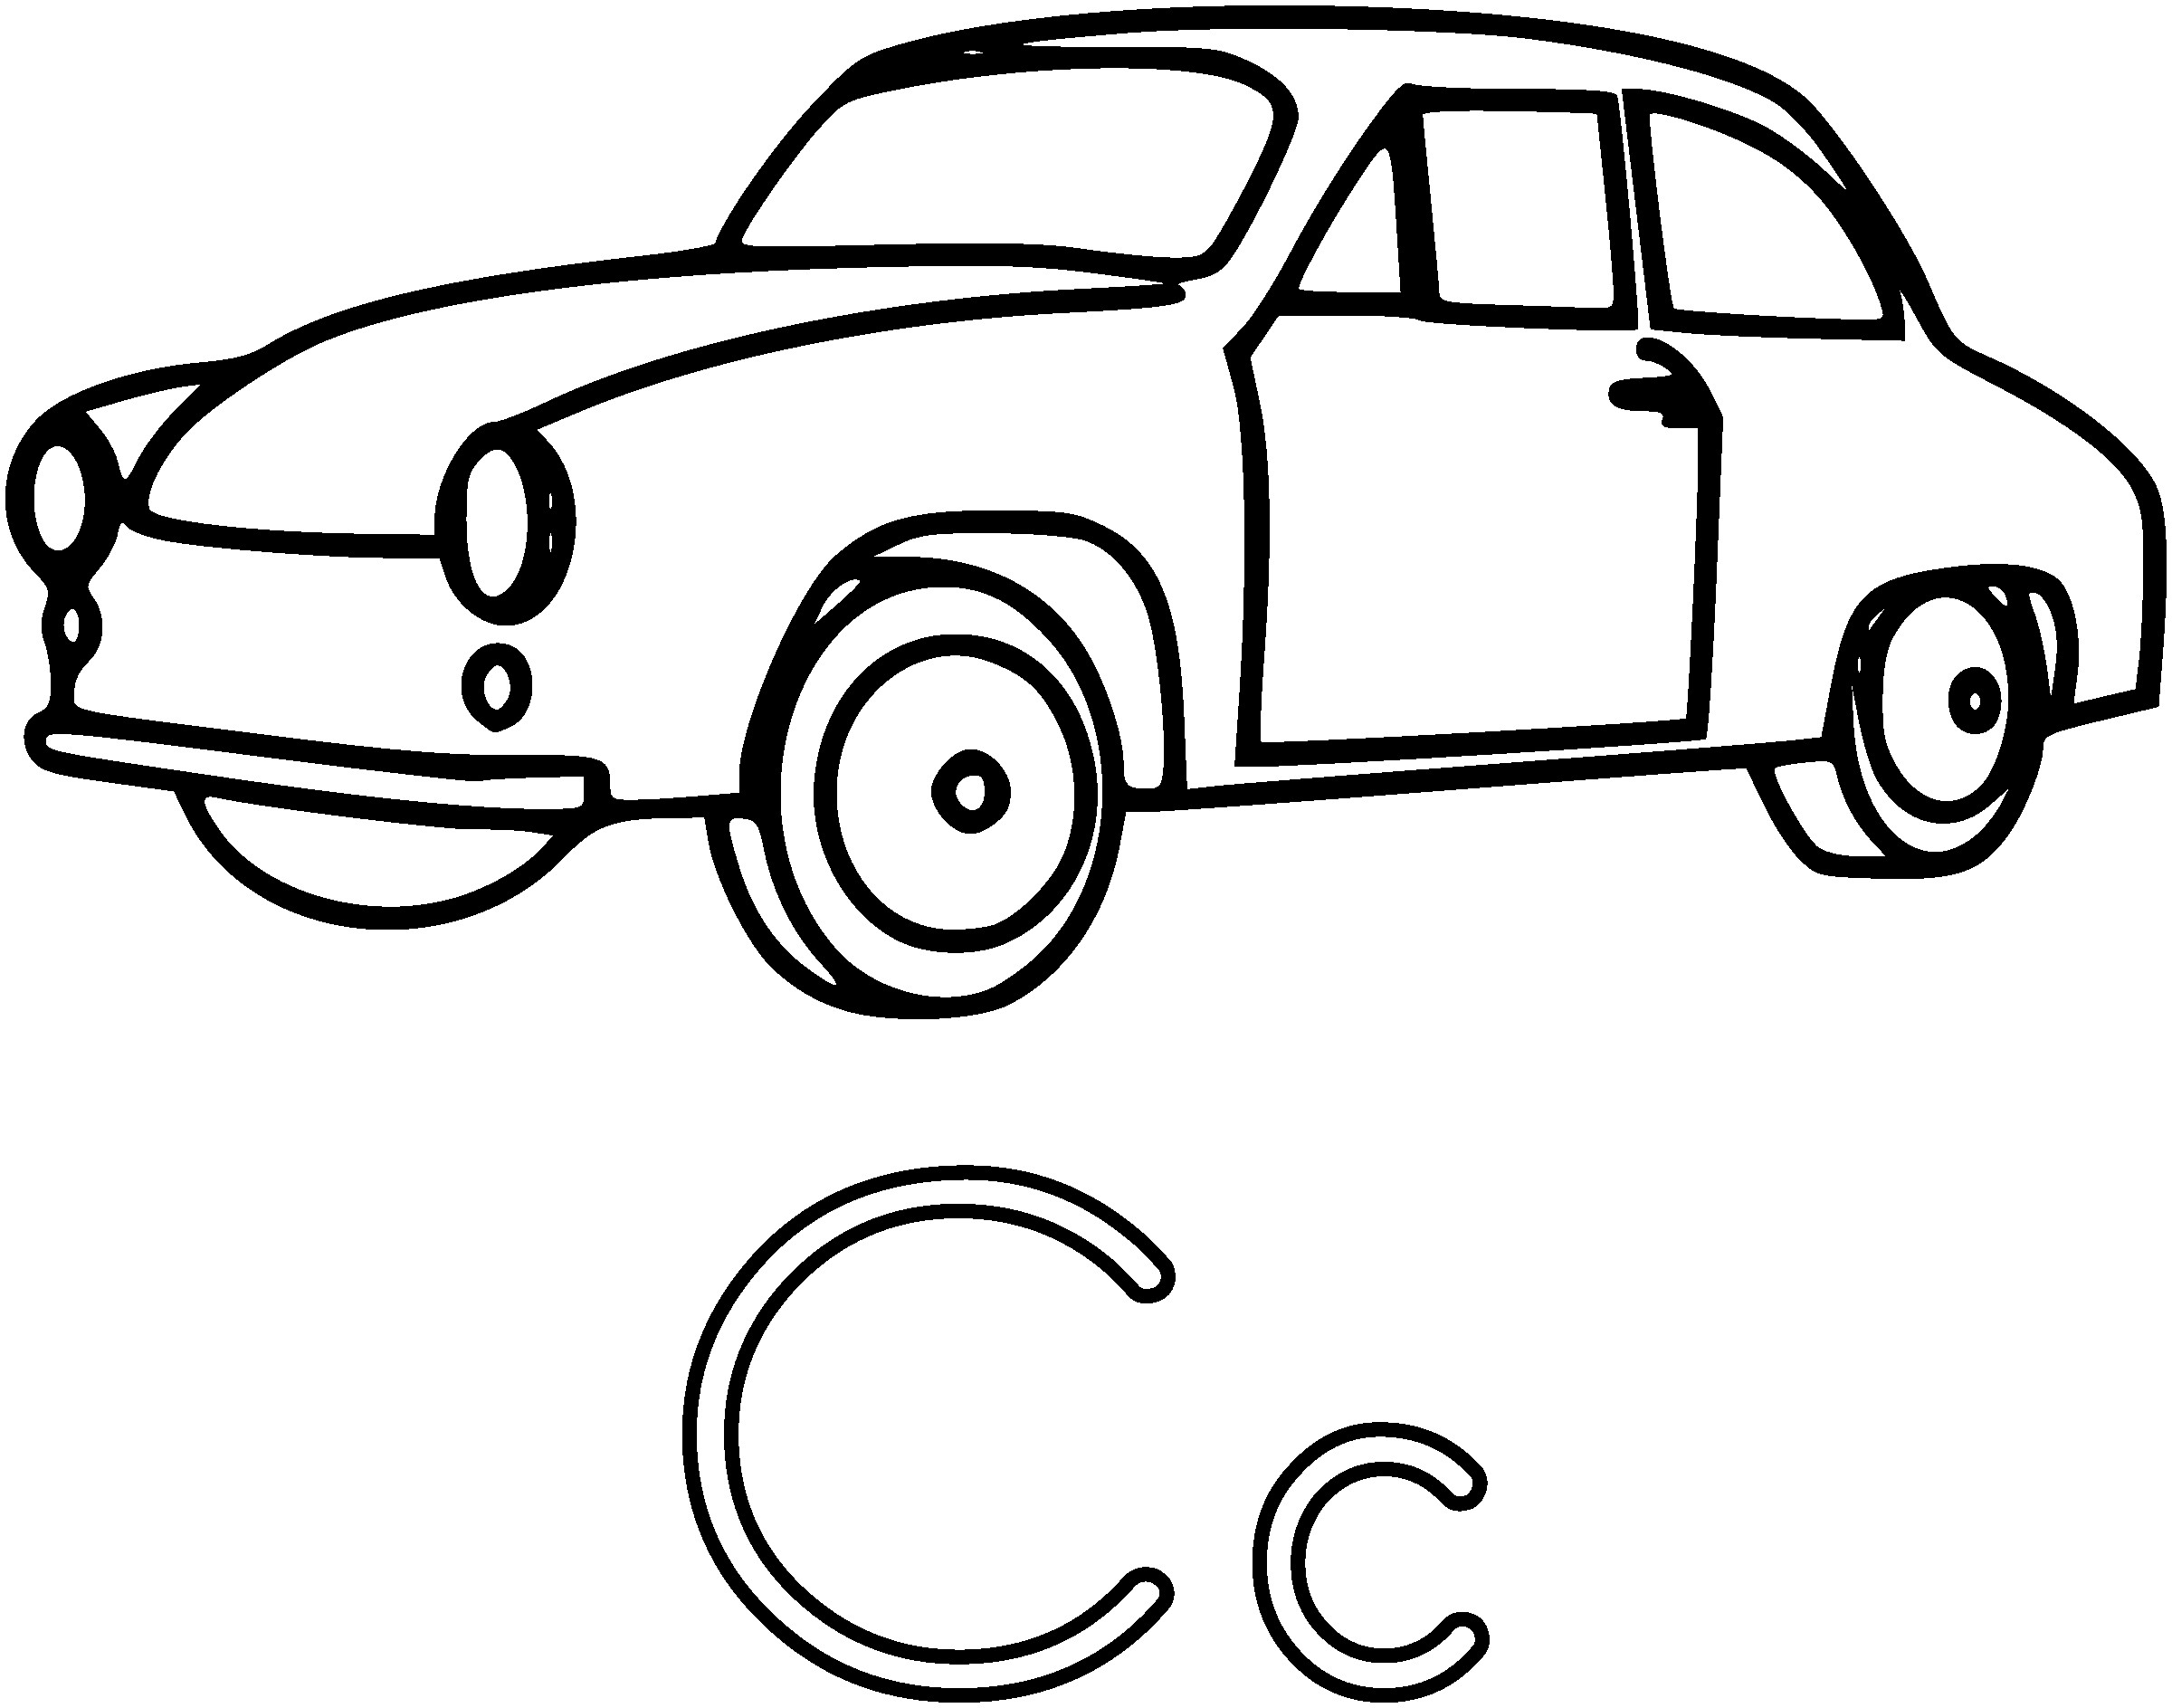 2400x1887 Car Clipart Black And White Outline In Car Clipart Black